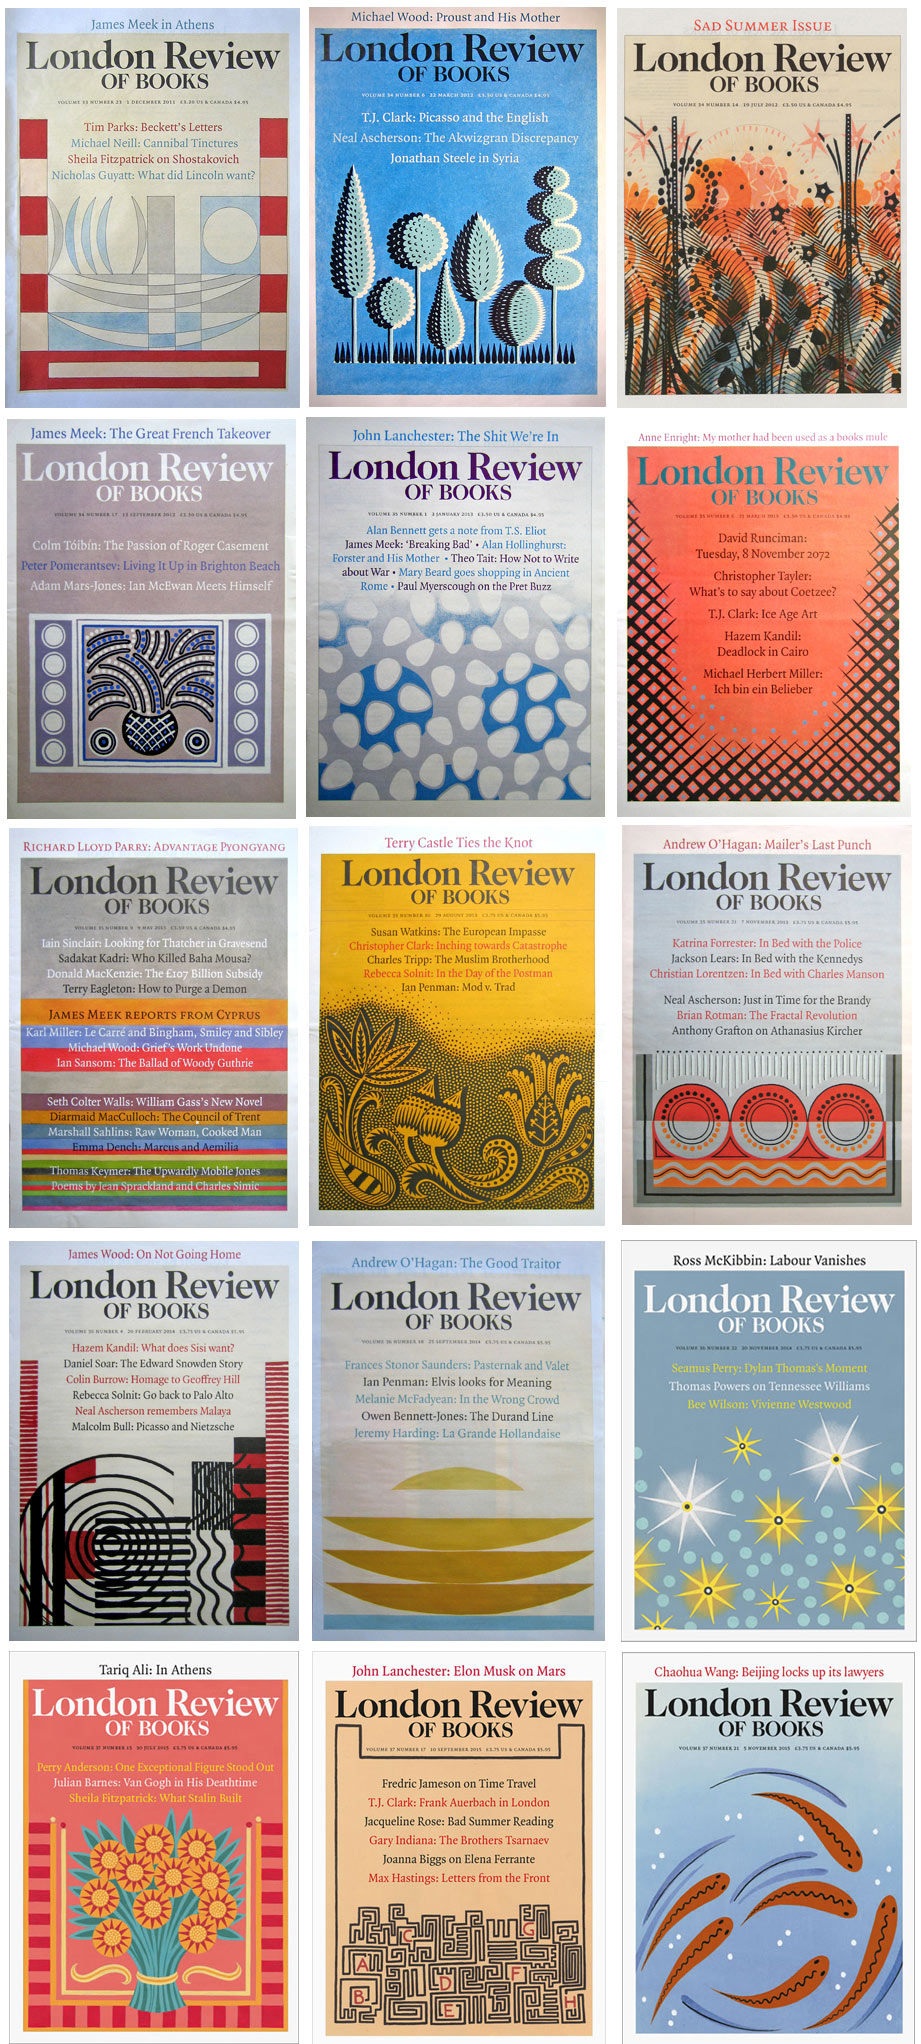 London Review of Books cover images